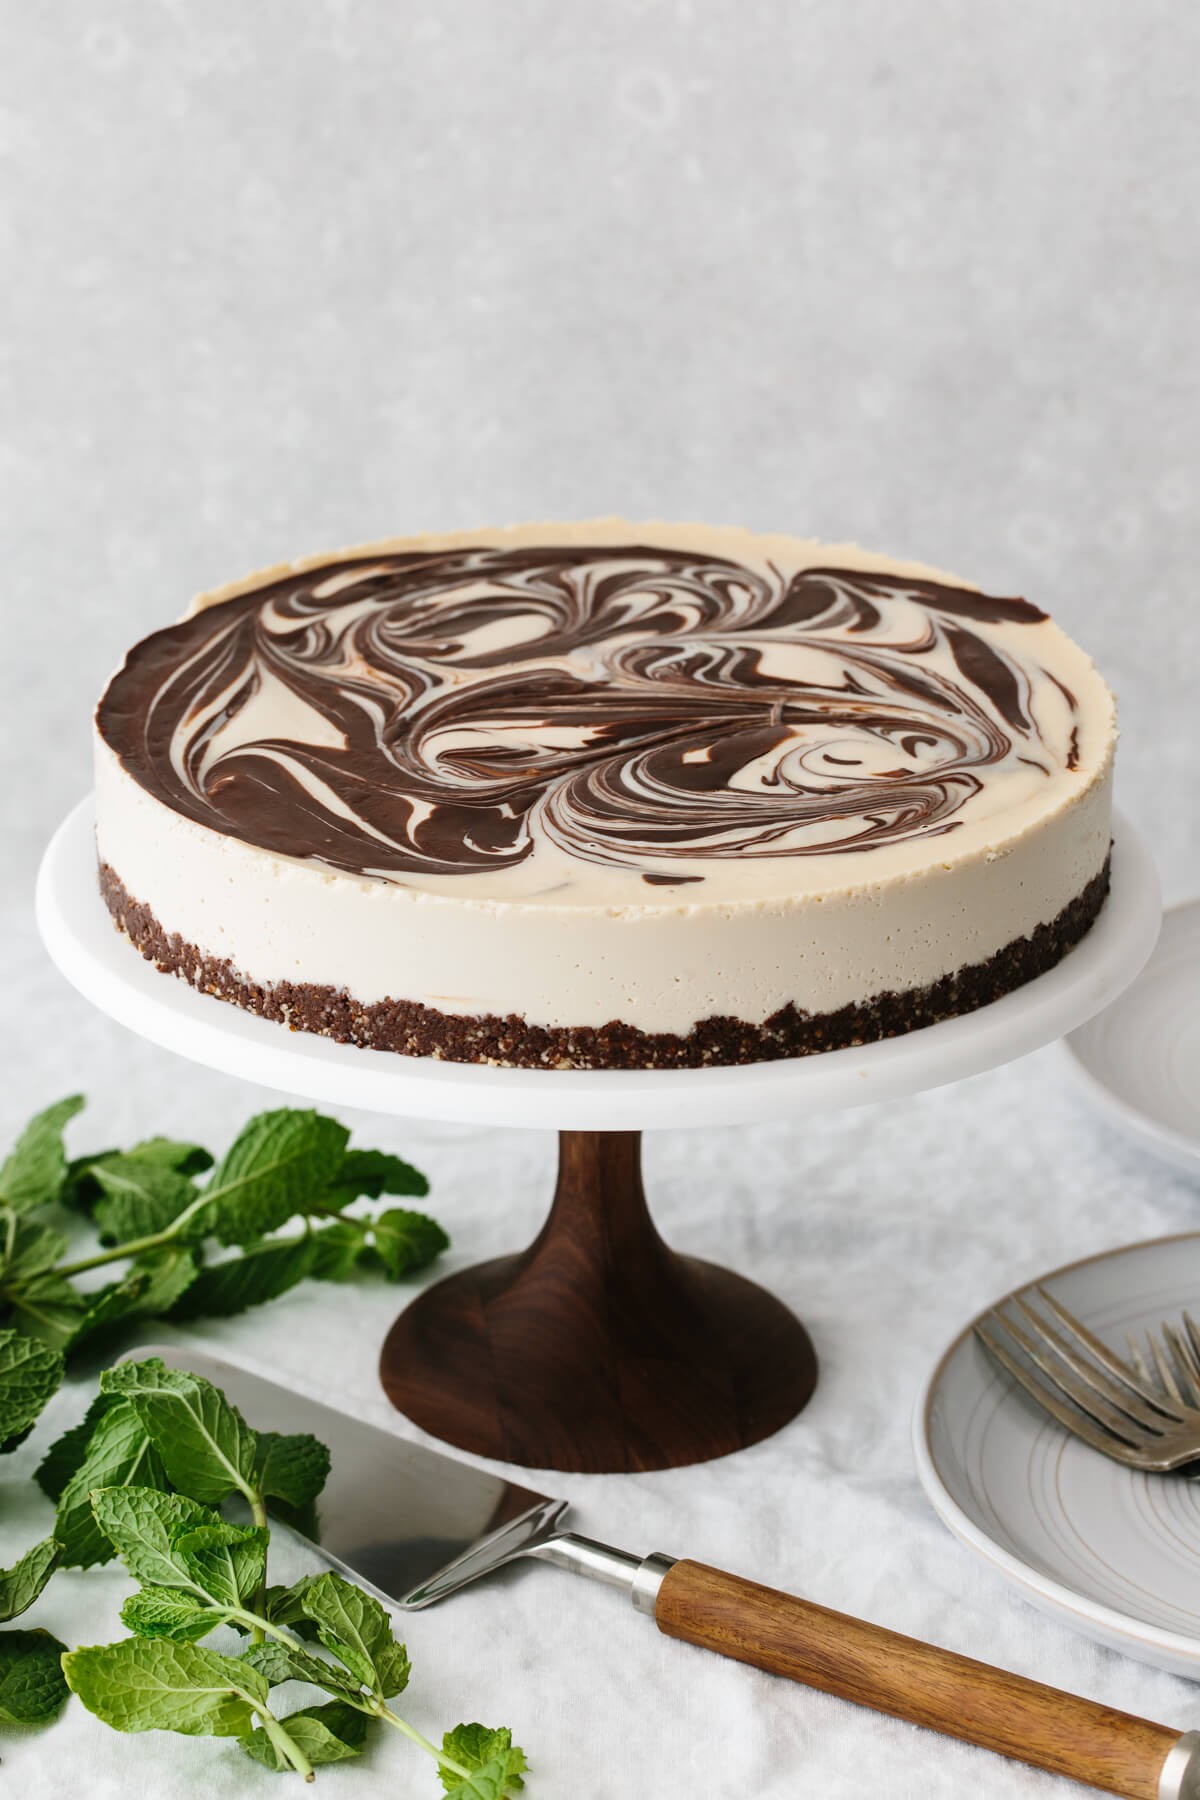 The mint chocolate vegan cheesecake on a cake stand, without toppings.